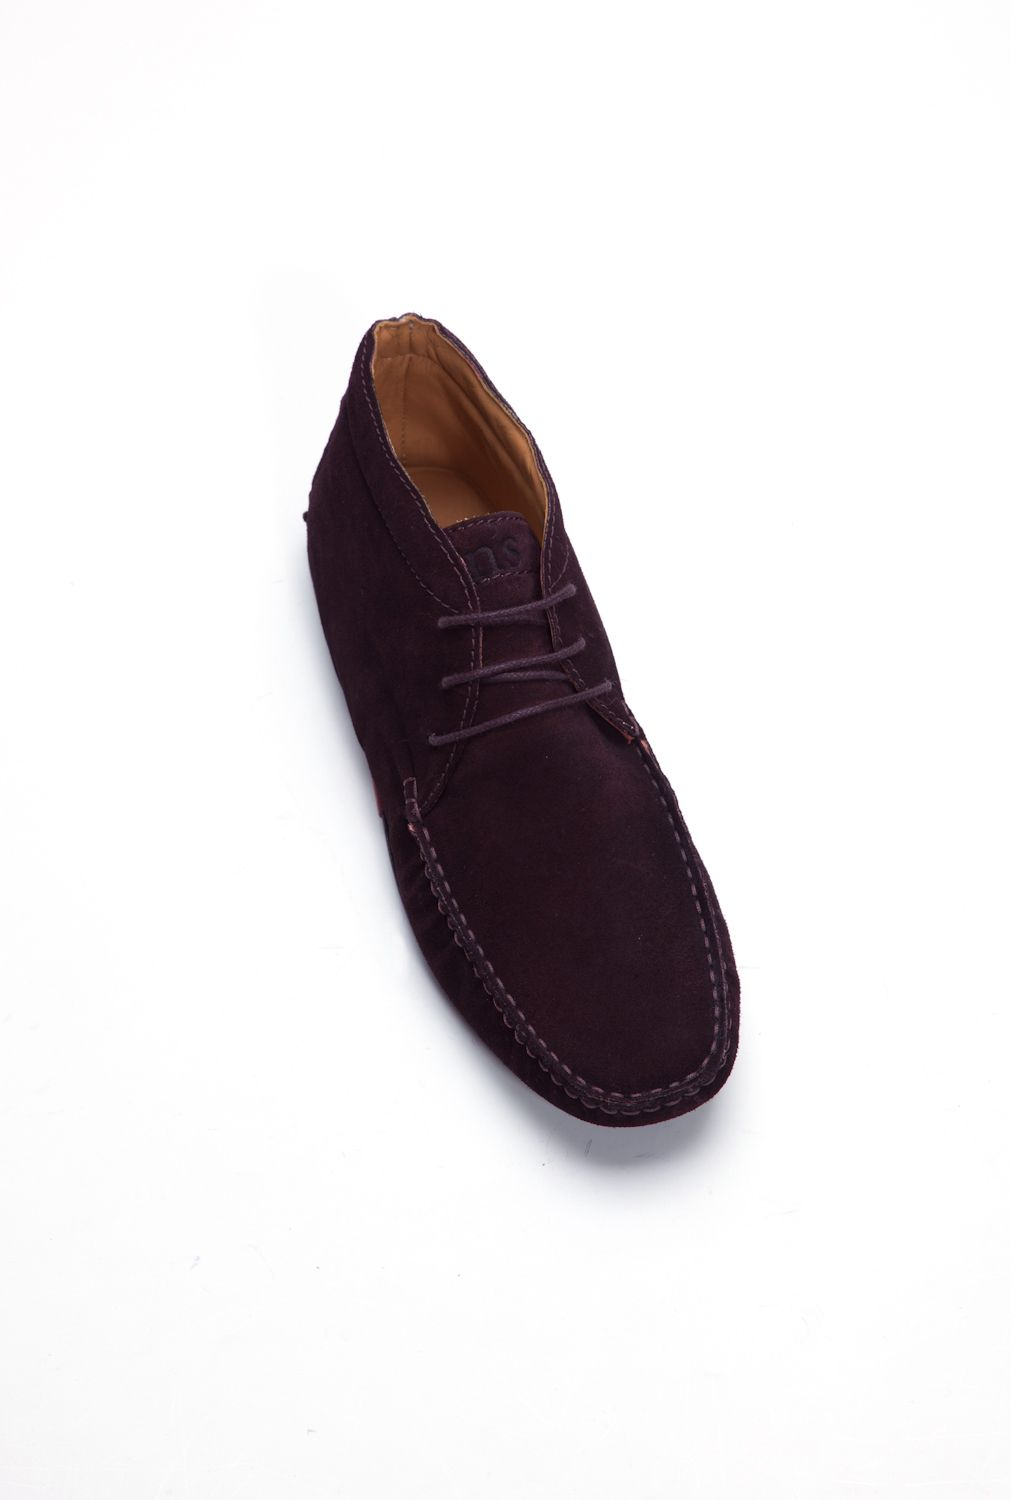 Theadore purple moccasin boots